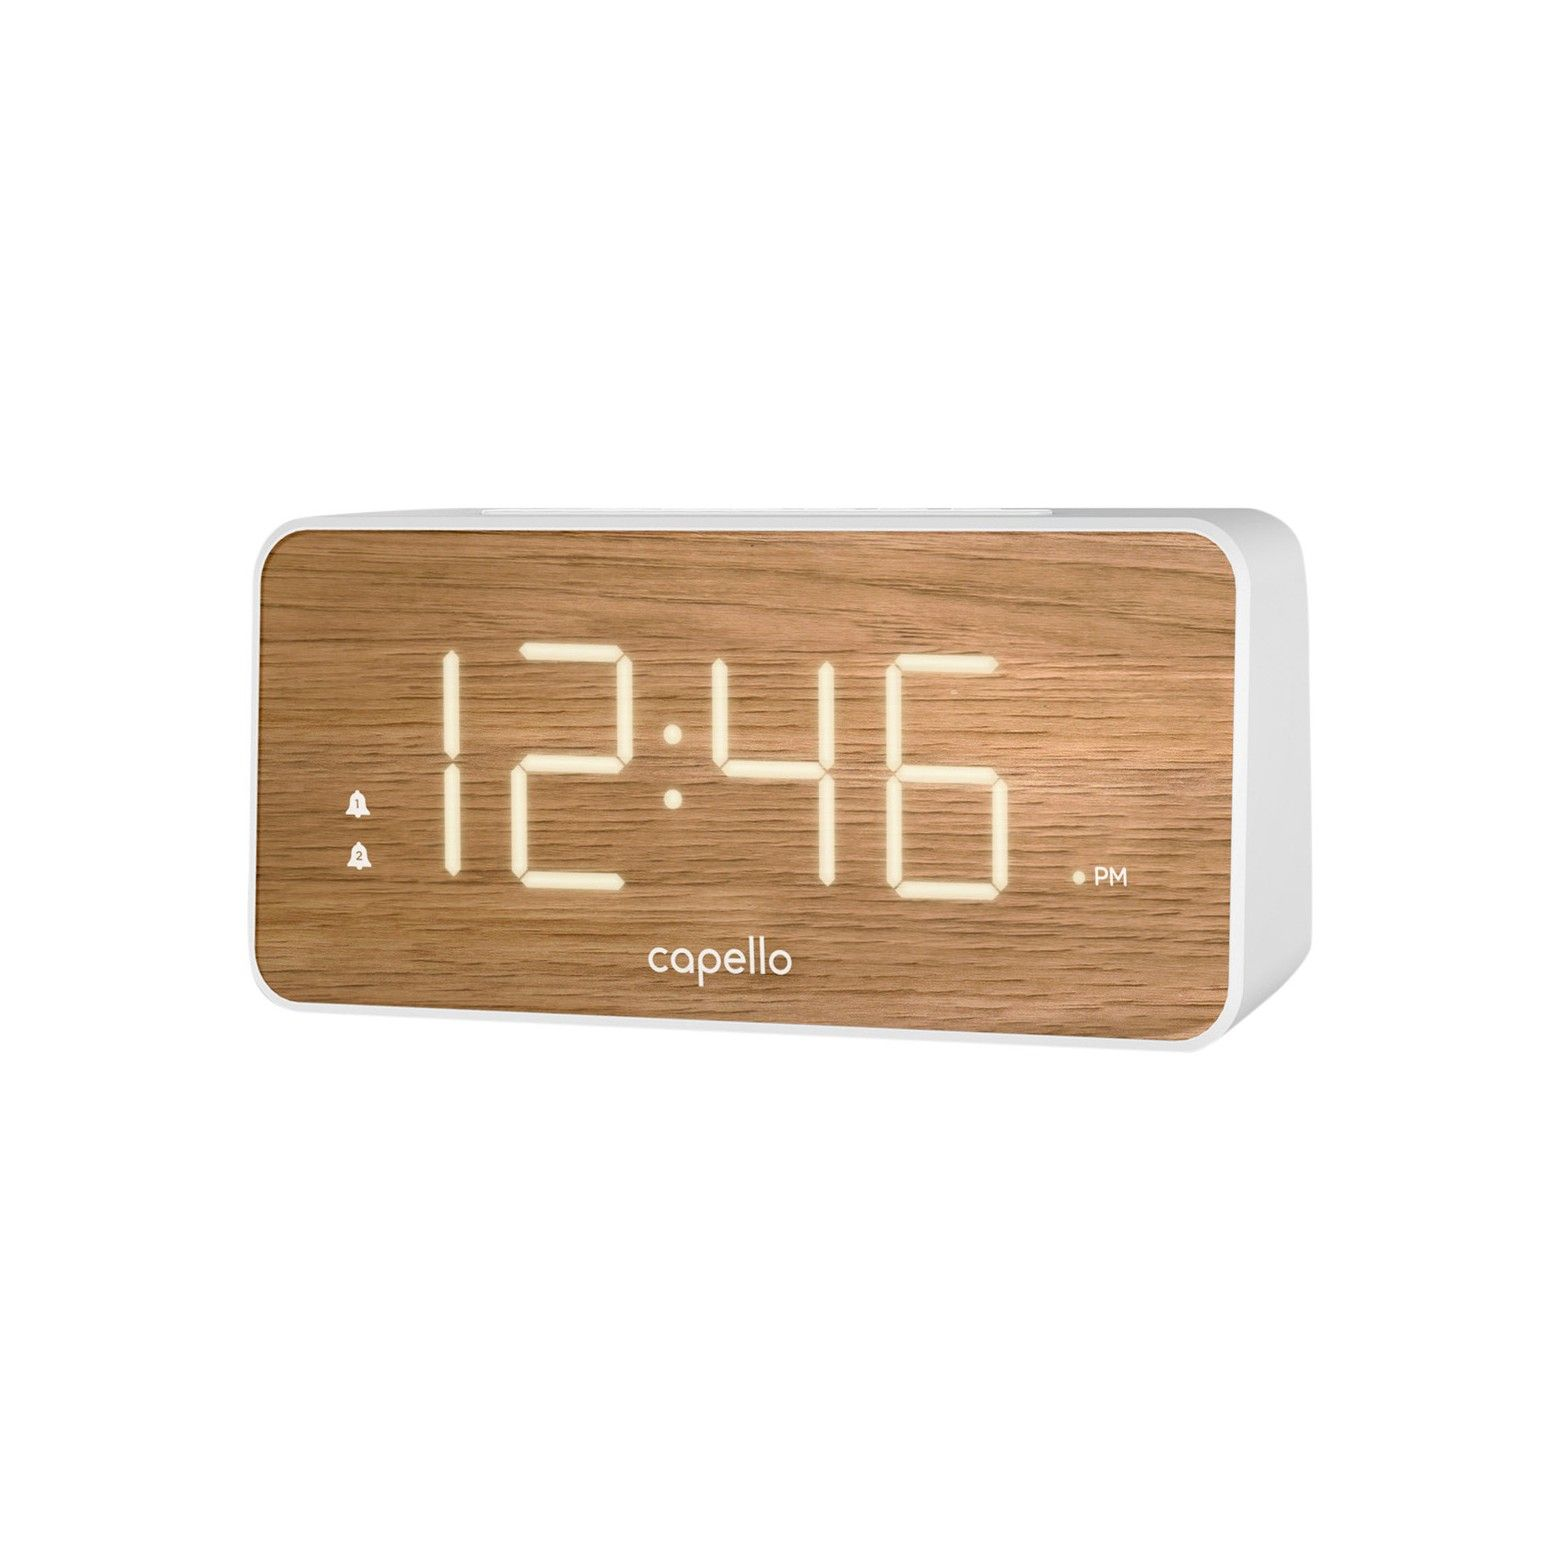 Extra Large Display Digital Alarm Clock White Pine Capello Alarm Clock Modern Alarm Clock Digital Alarm Clock